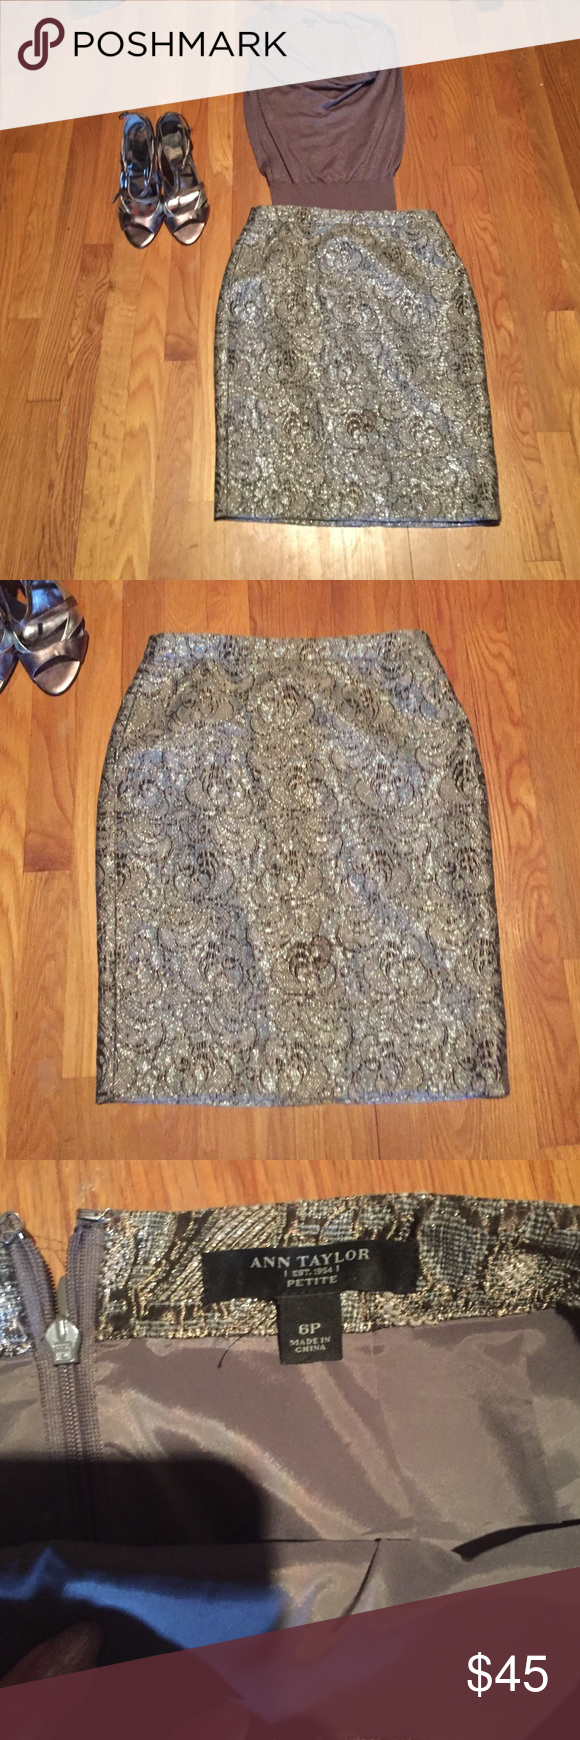 Ann Taylor silver skirt perfect for Holidays. Ann Taylor silver skirt perfect for Holidays. Ann Taylor Skirts Midi